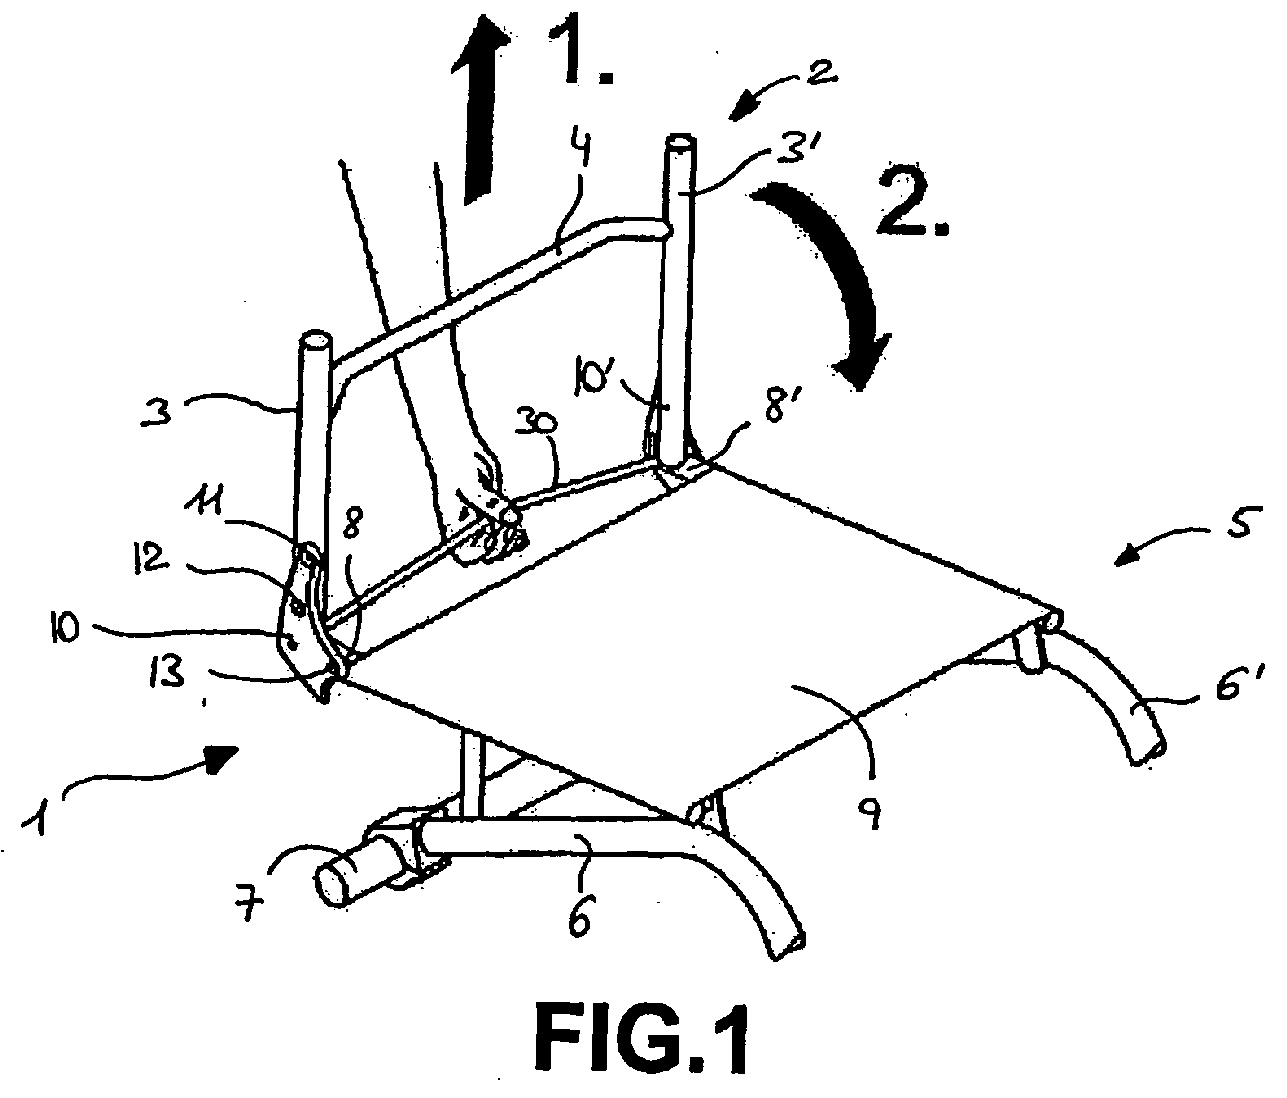 ep1769783a1 device for adjusting the seat back angle in a Lateral Support Wheelchair with Headrest figure imgaf001